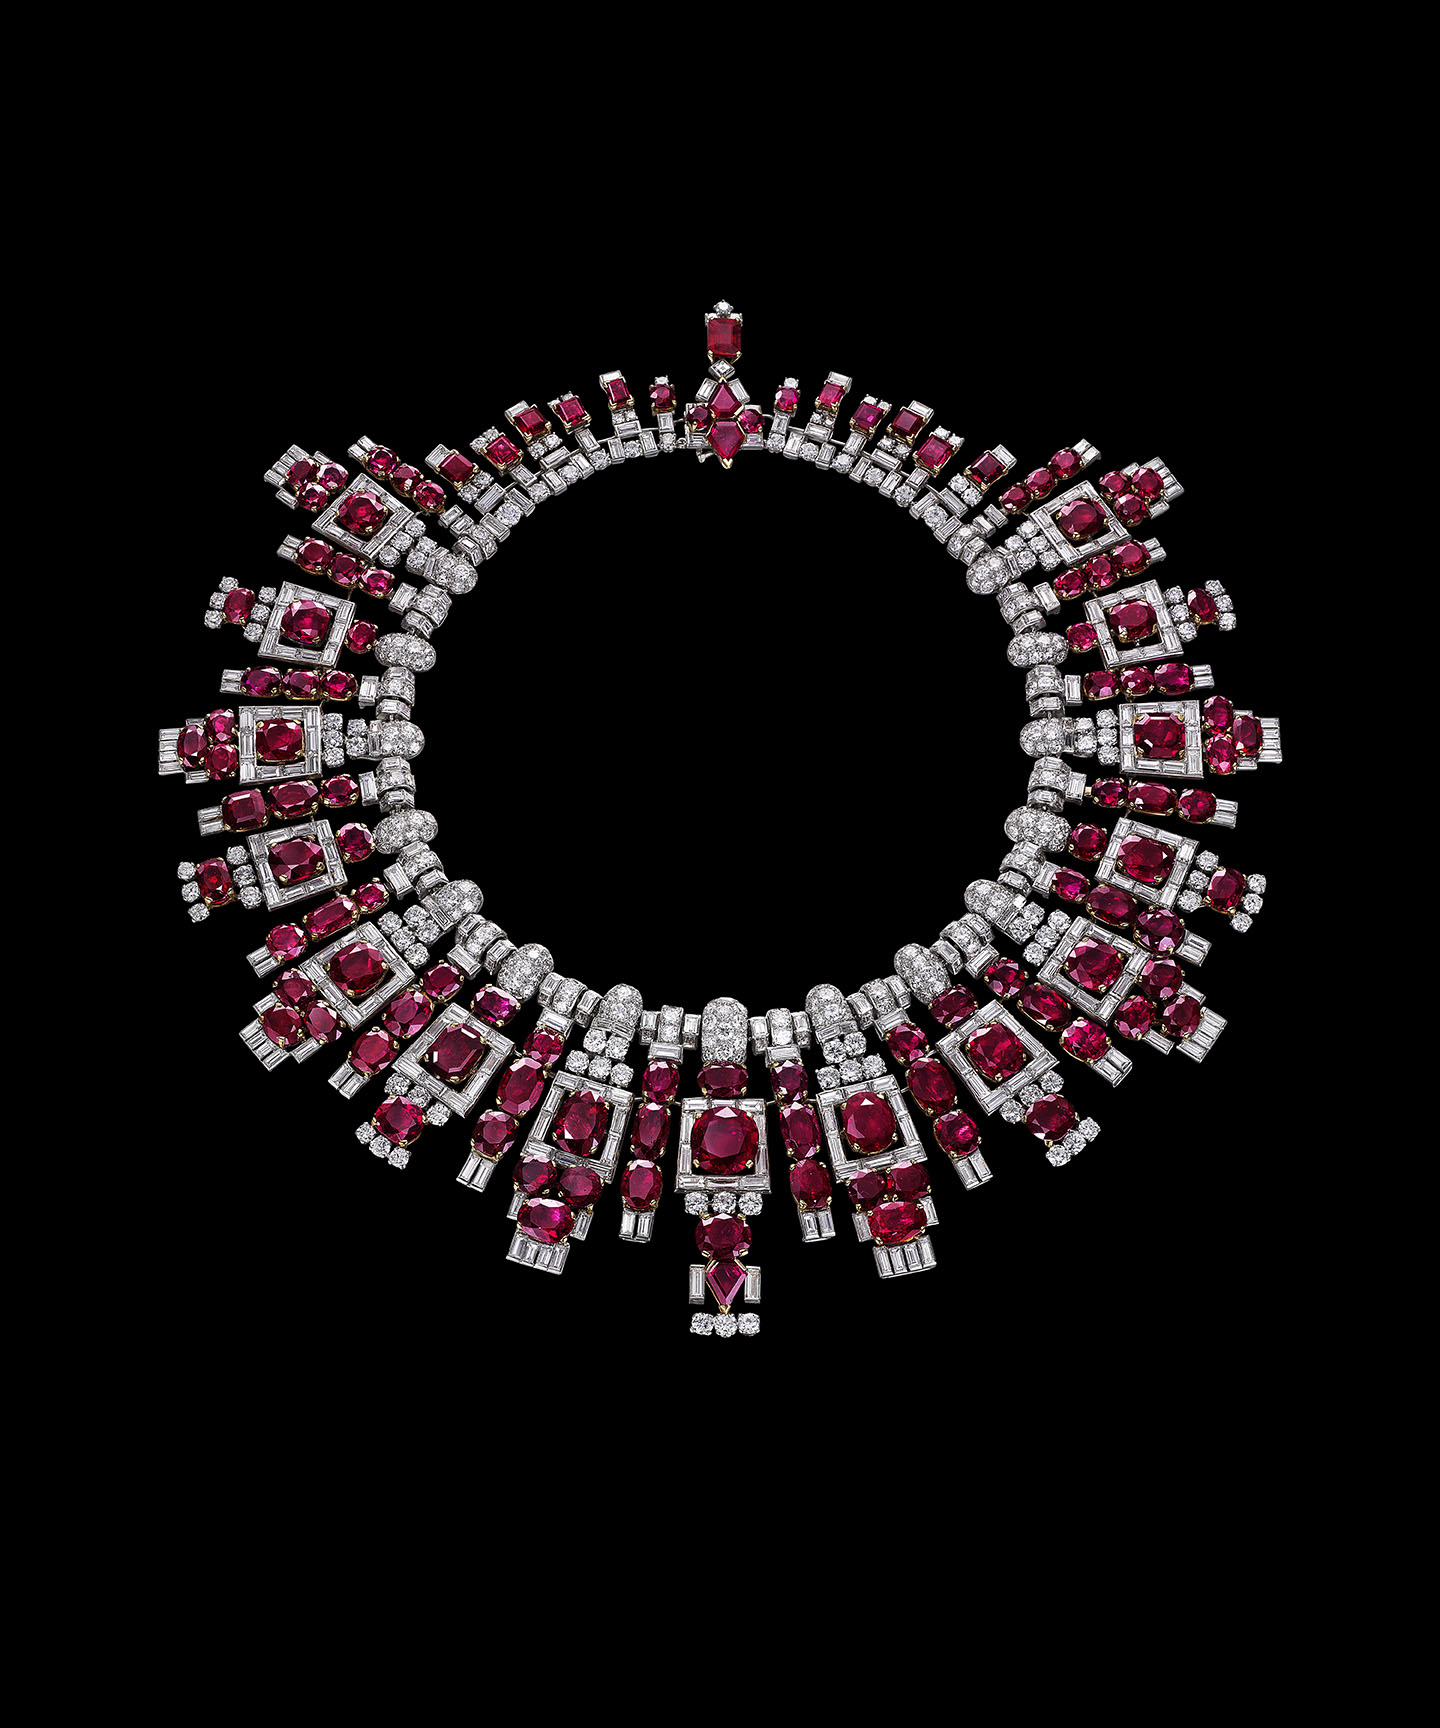 Nawanagar ruby necklace, Cartier, London, 1937. Platinum, rubies, and diamonds, 8 1/16 x 7 11/16 in.